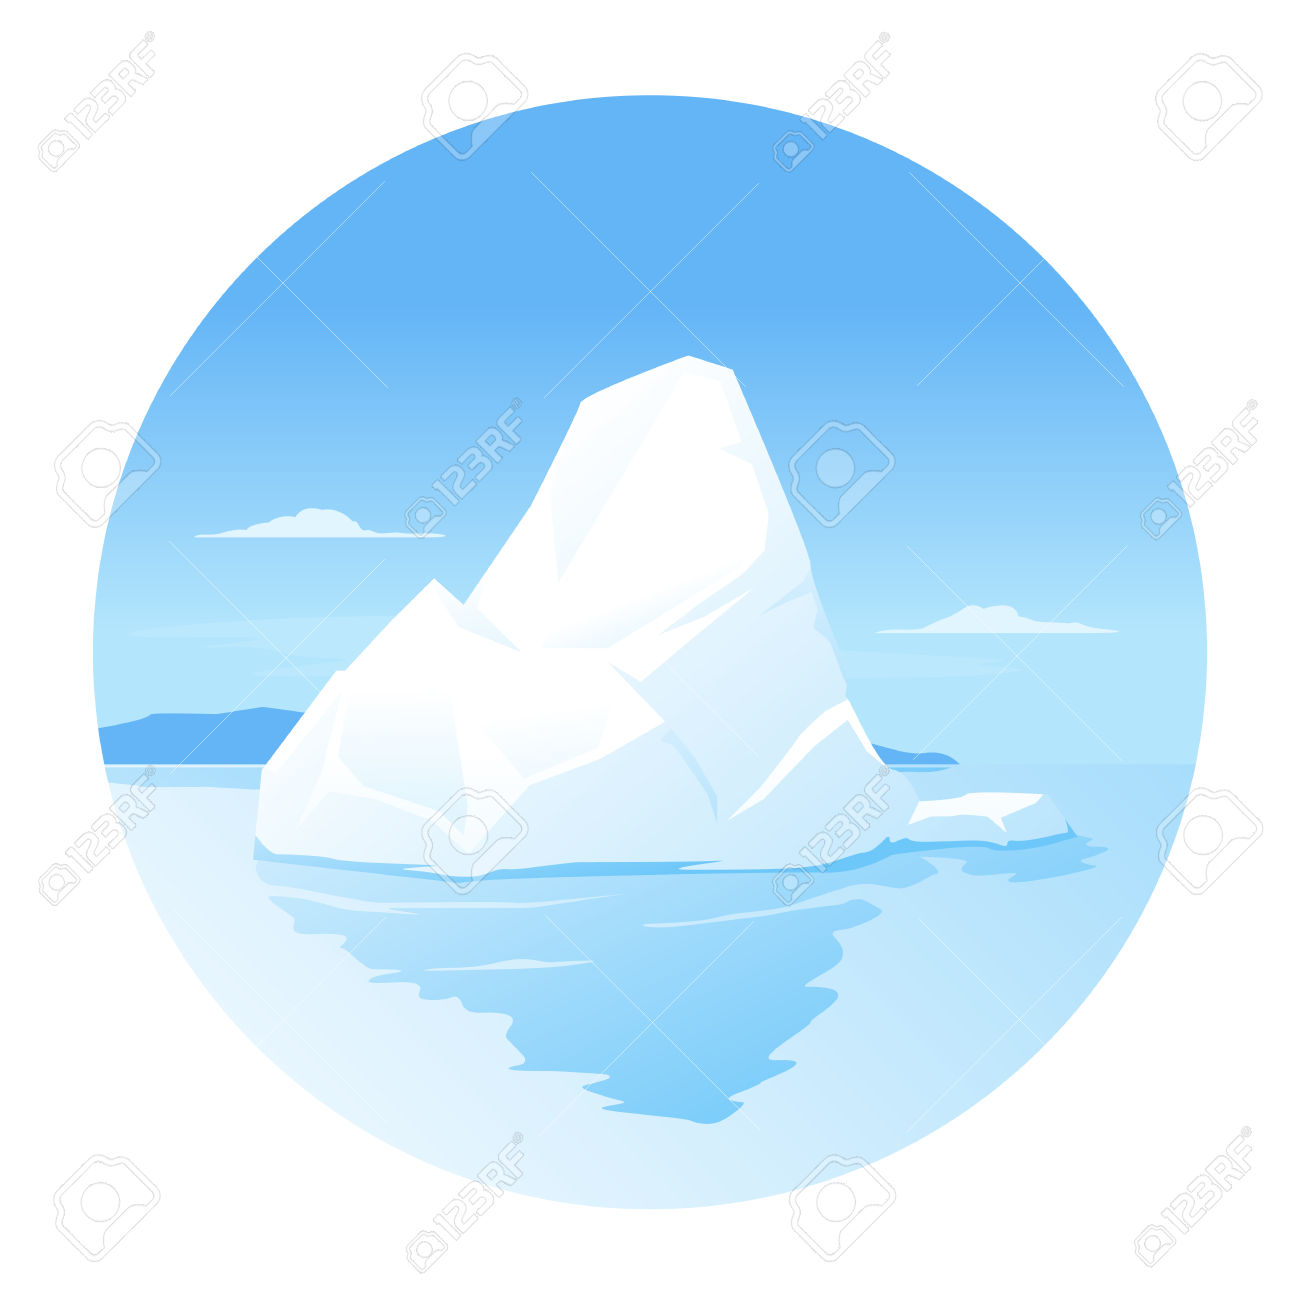 Iceberg clipart #2, Download drawings